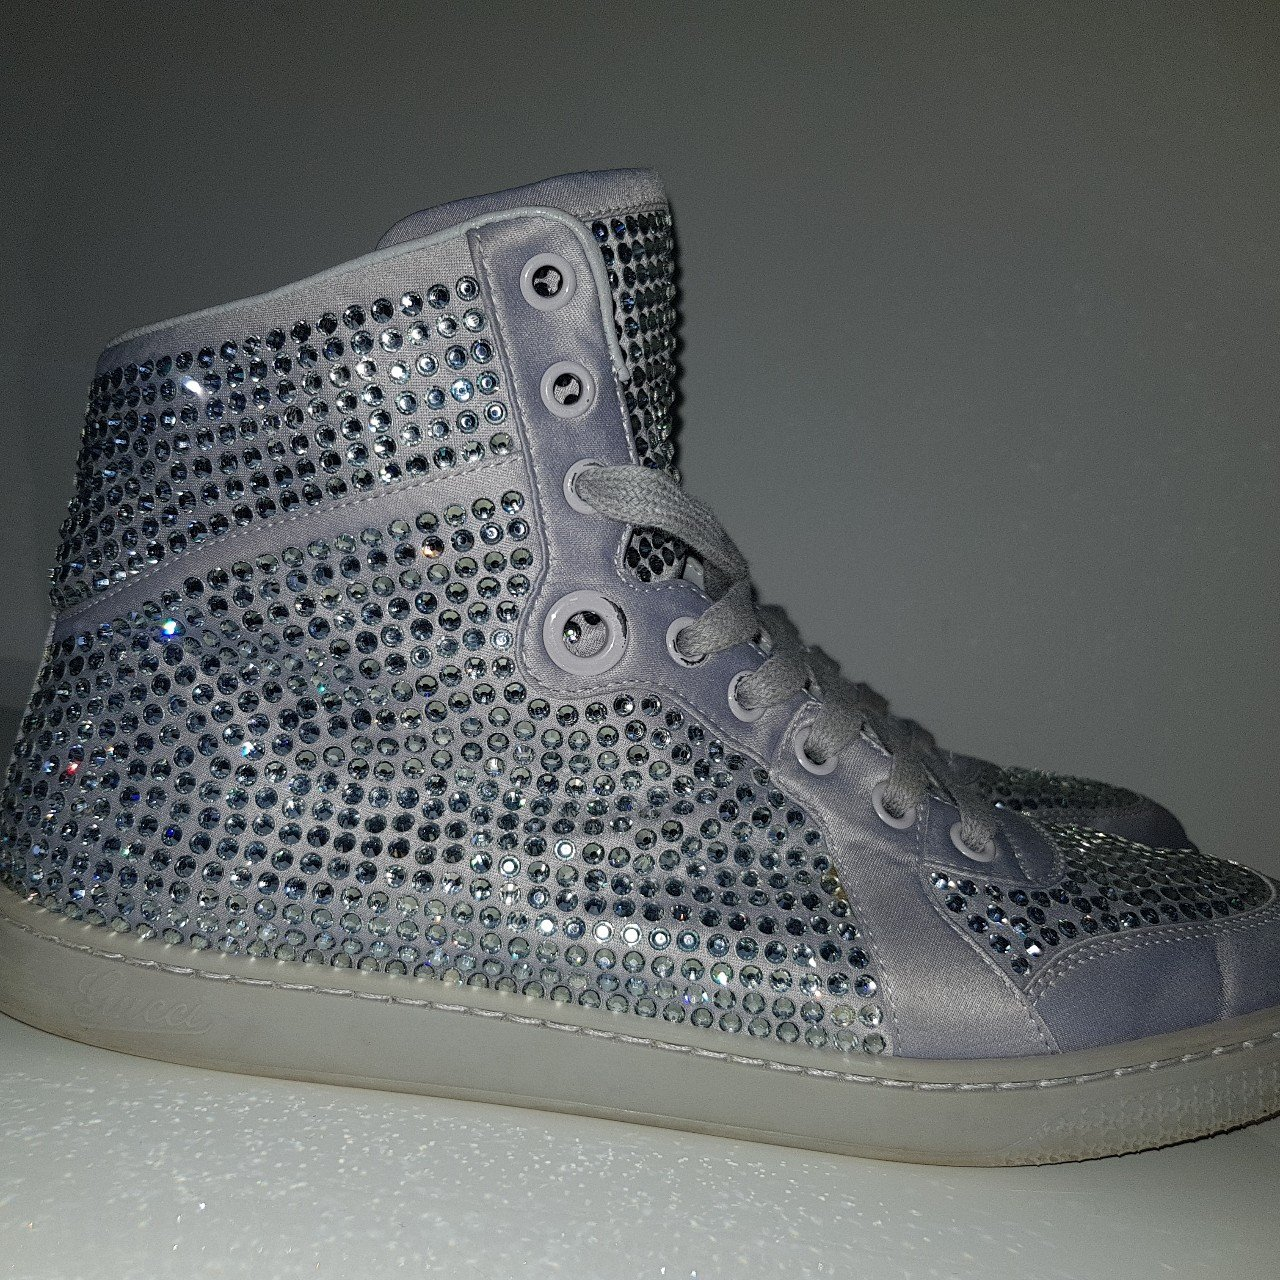 AUTHENTIC Gucci Coda Crystal High-top